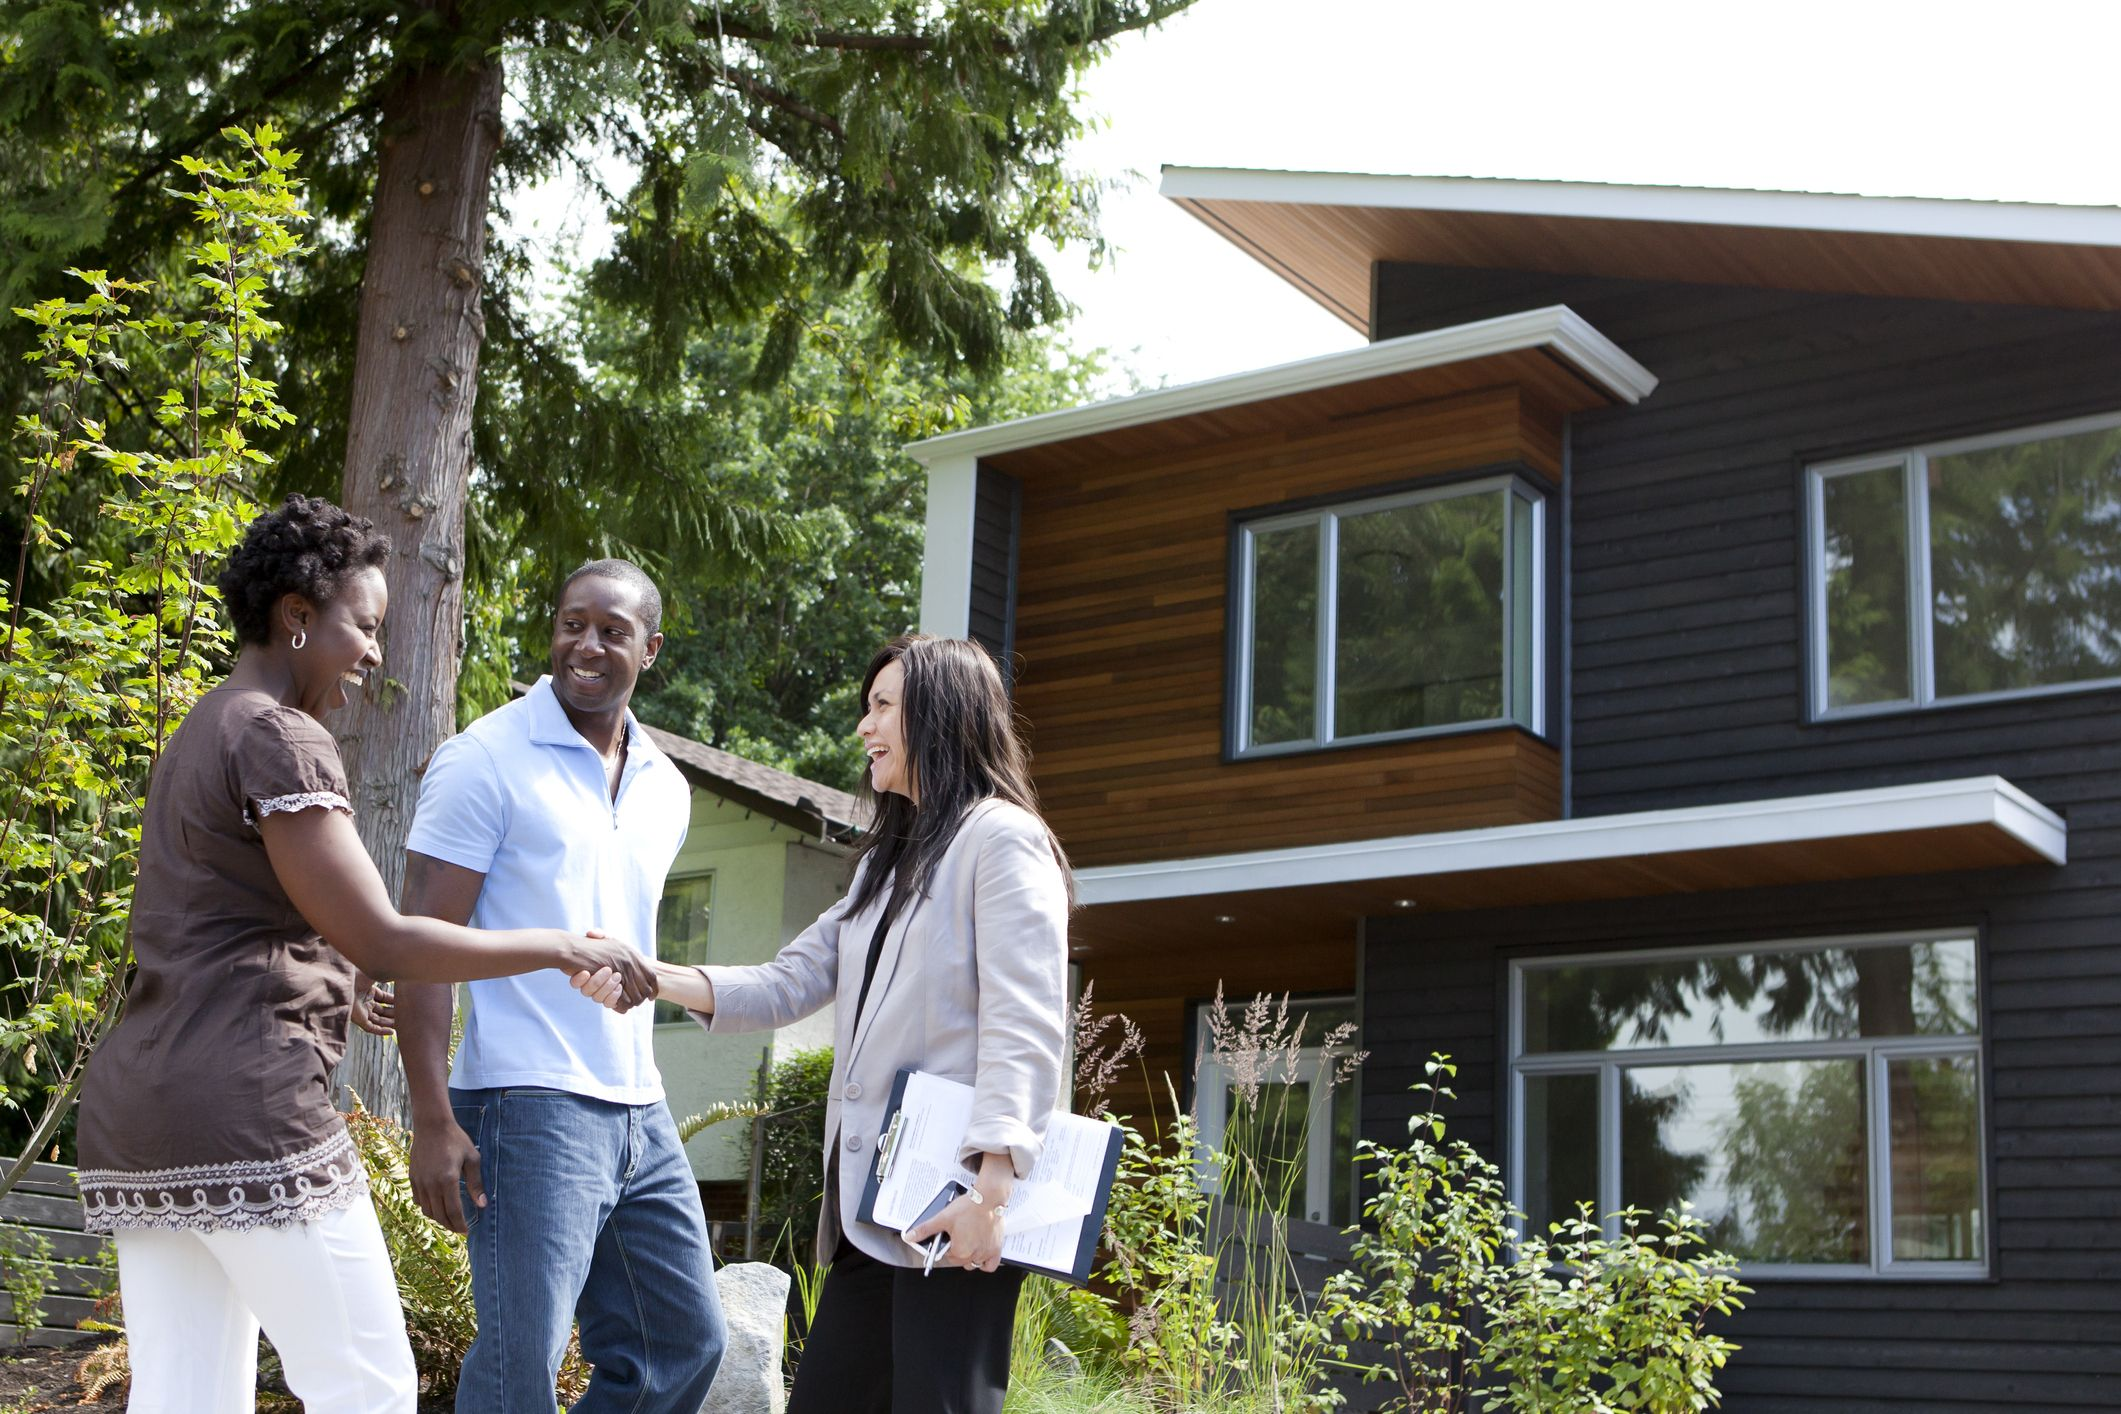 real estate agent greeting couple at house royalty free image 111661701 1561758969 - Prepare for a better future